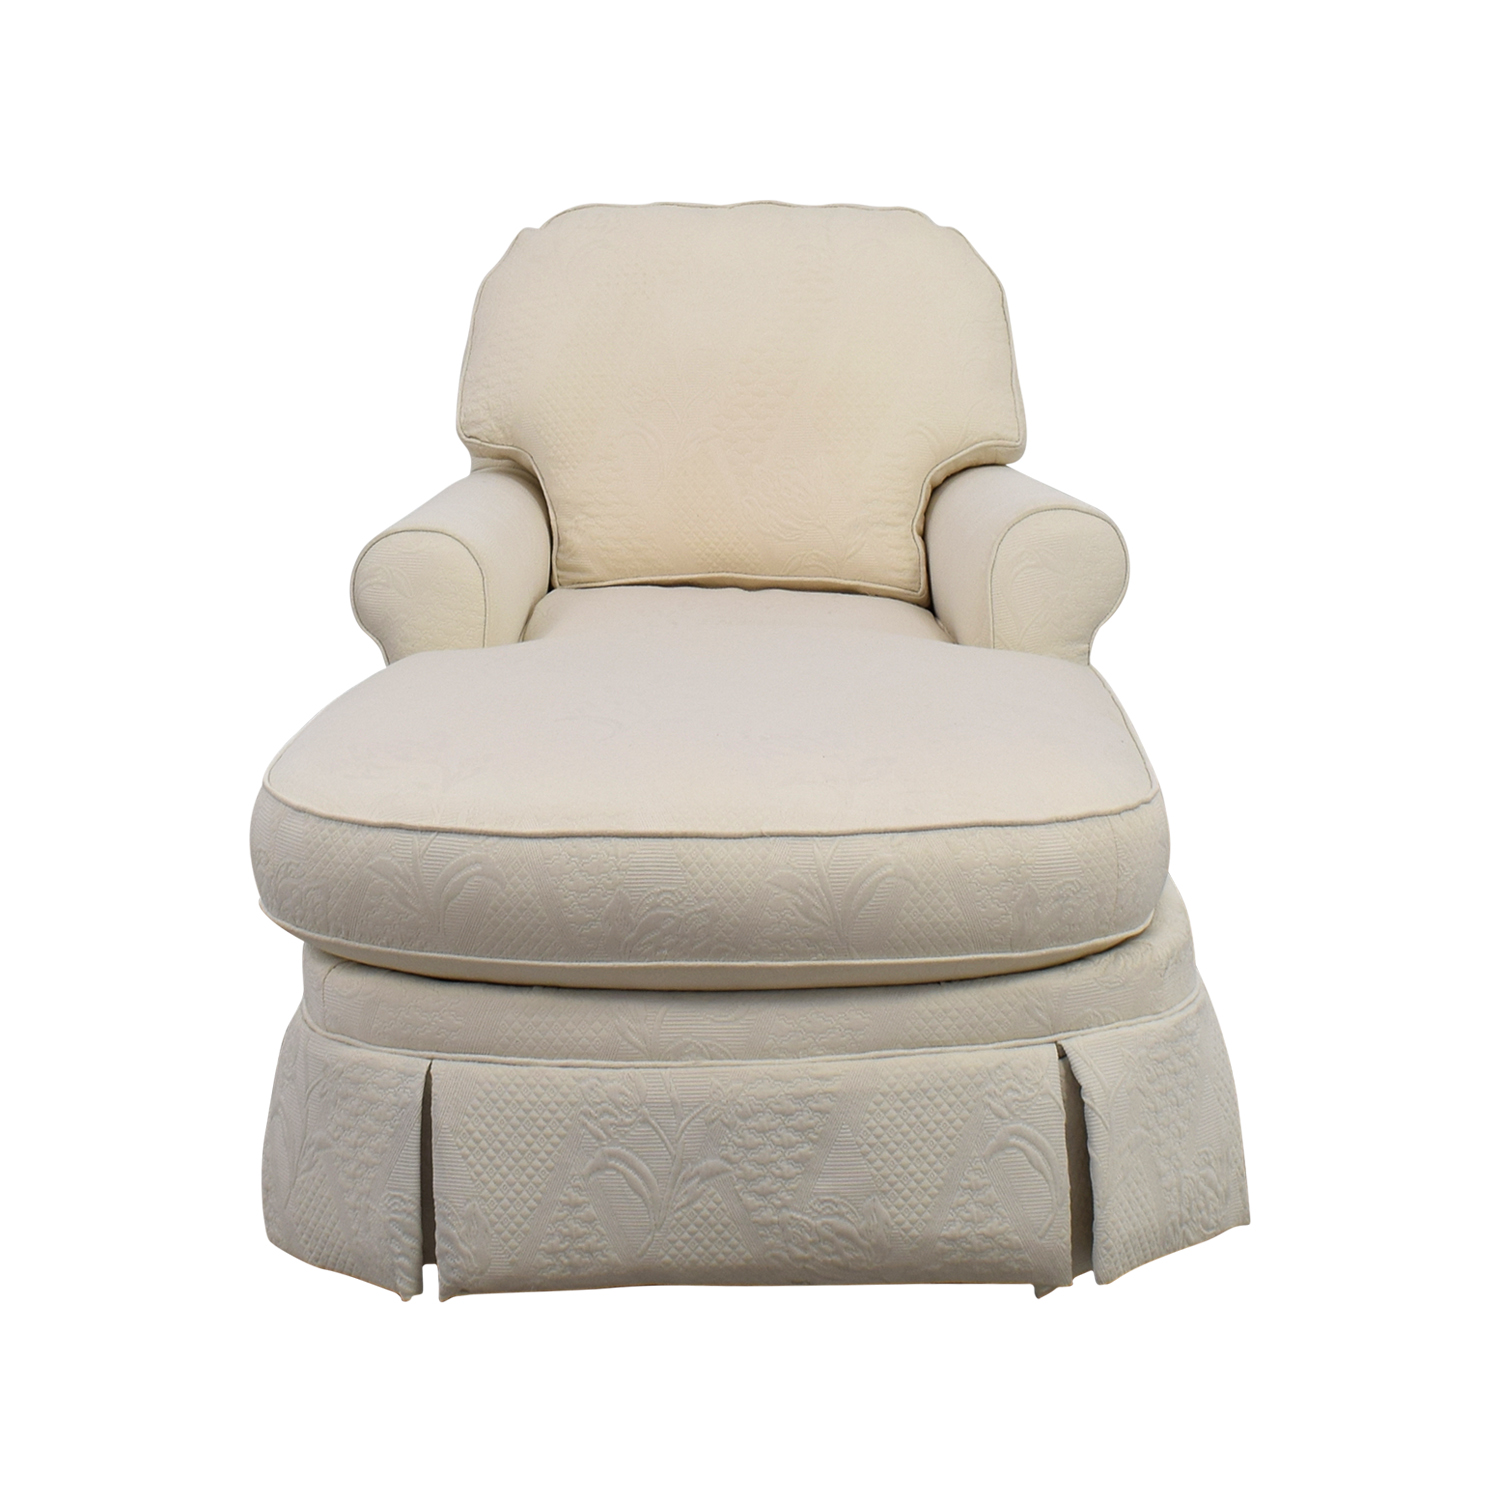 Ethan Allen Ethan Allen Victoria White Chaise Lounge on sale